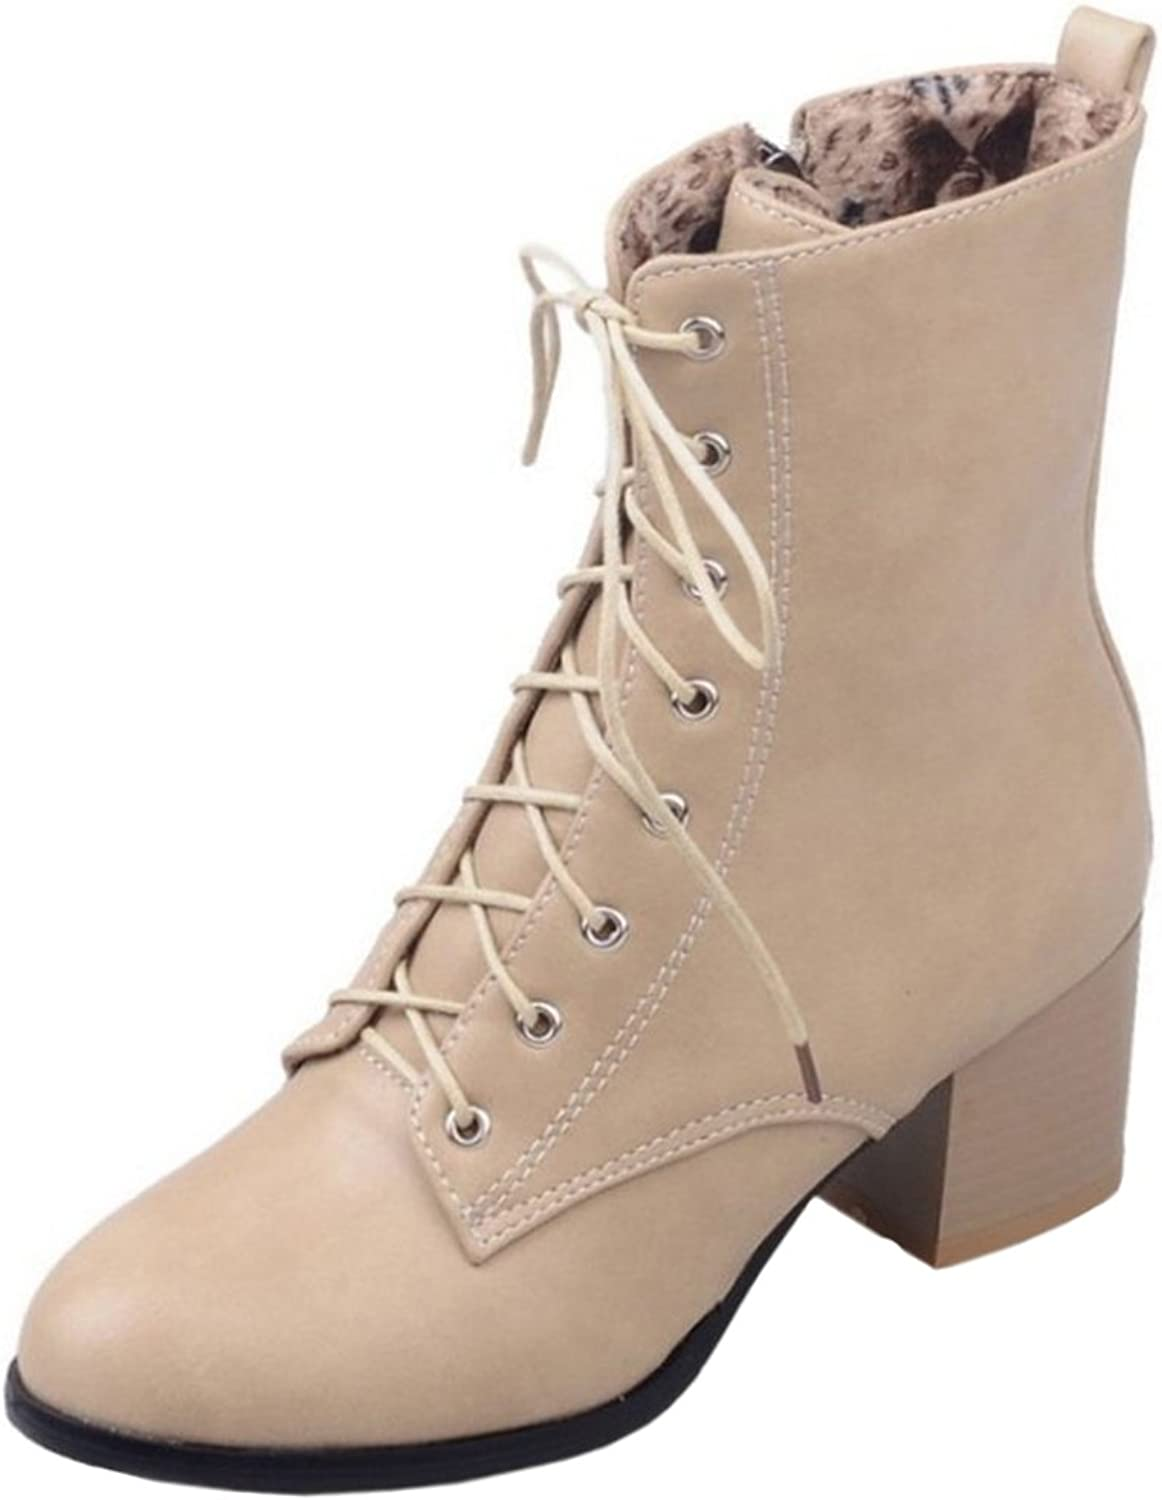 AicciAizzi Women Fashion Zipper Boots